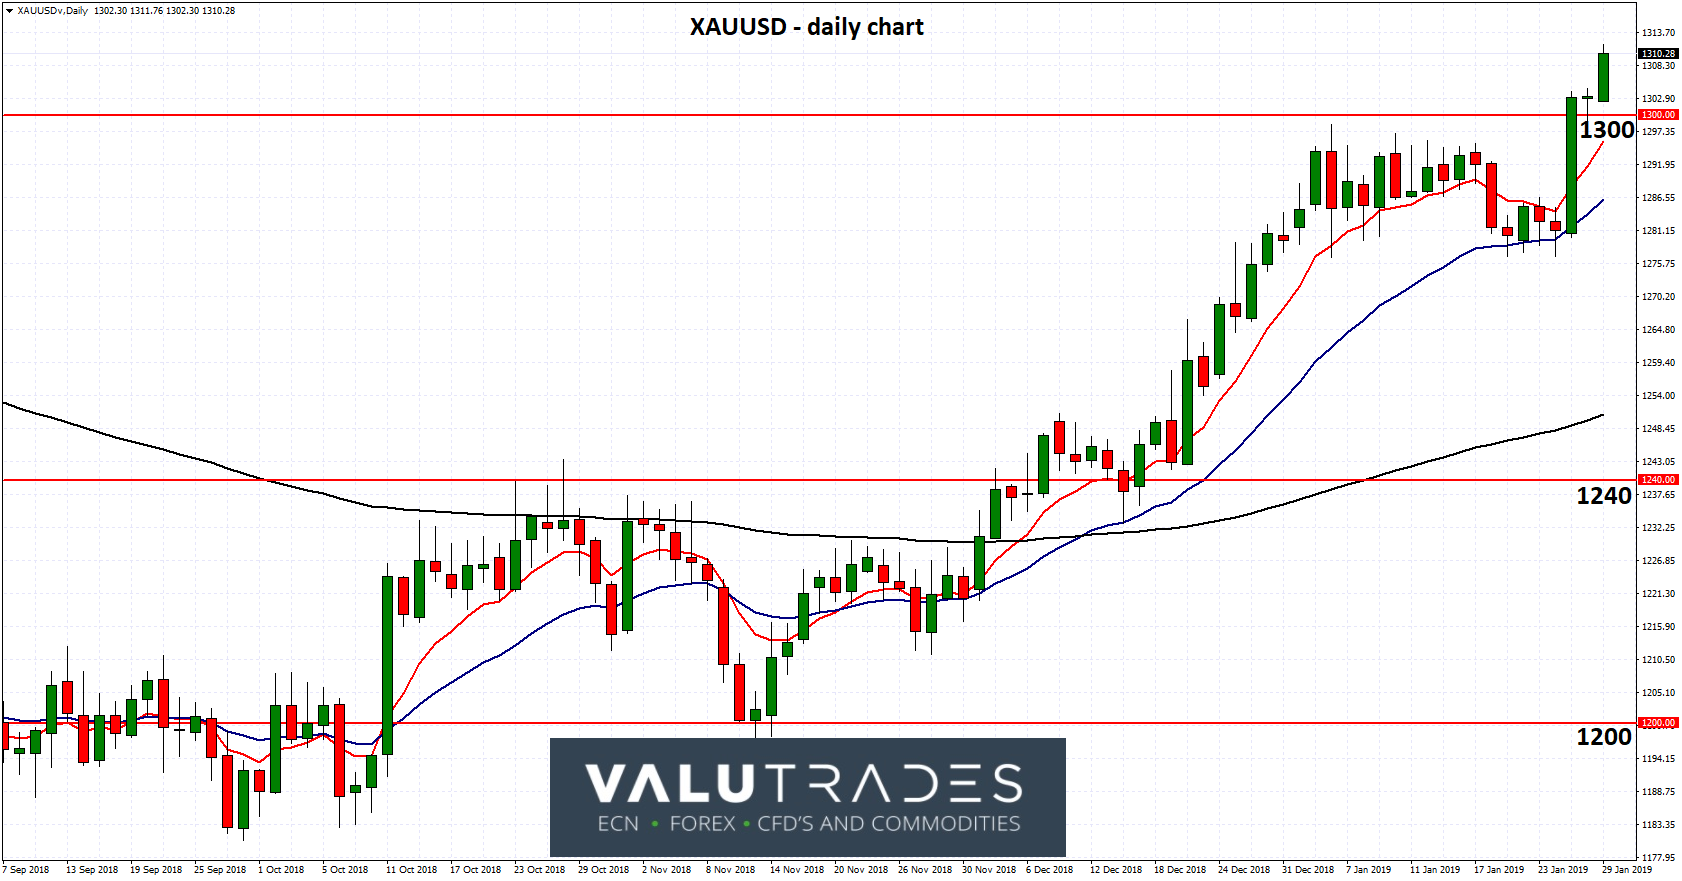 XAUUSD - Moves to Eight Month High Above 1300 on Likely Fed Pause